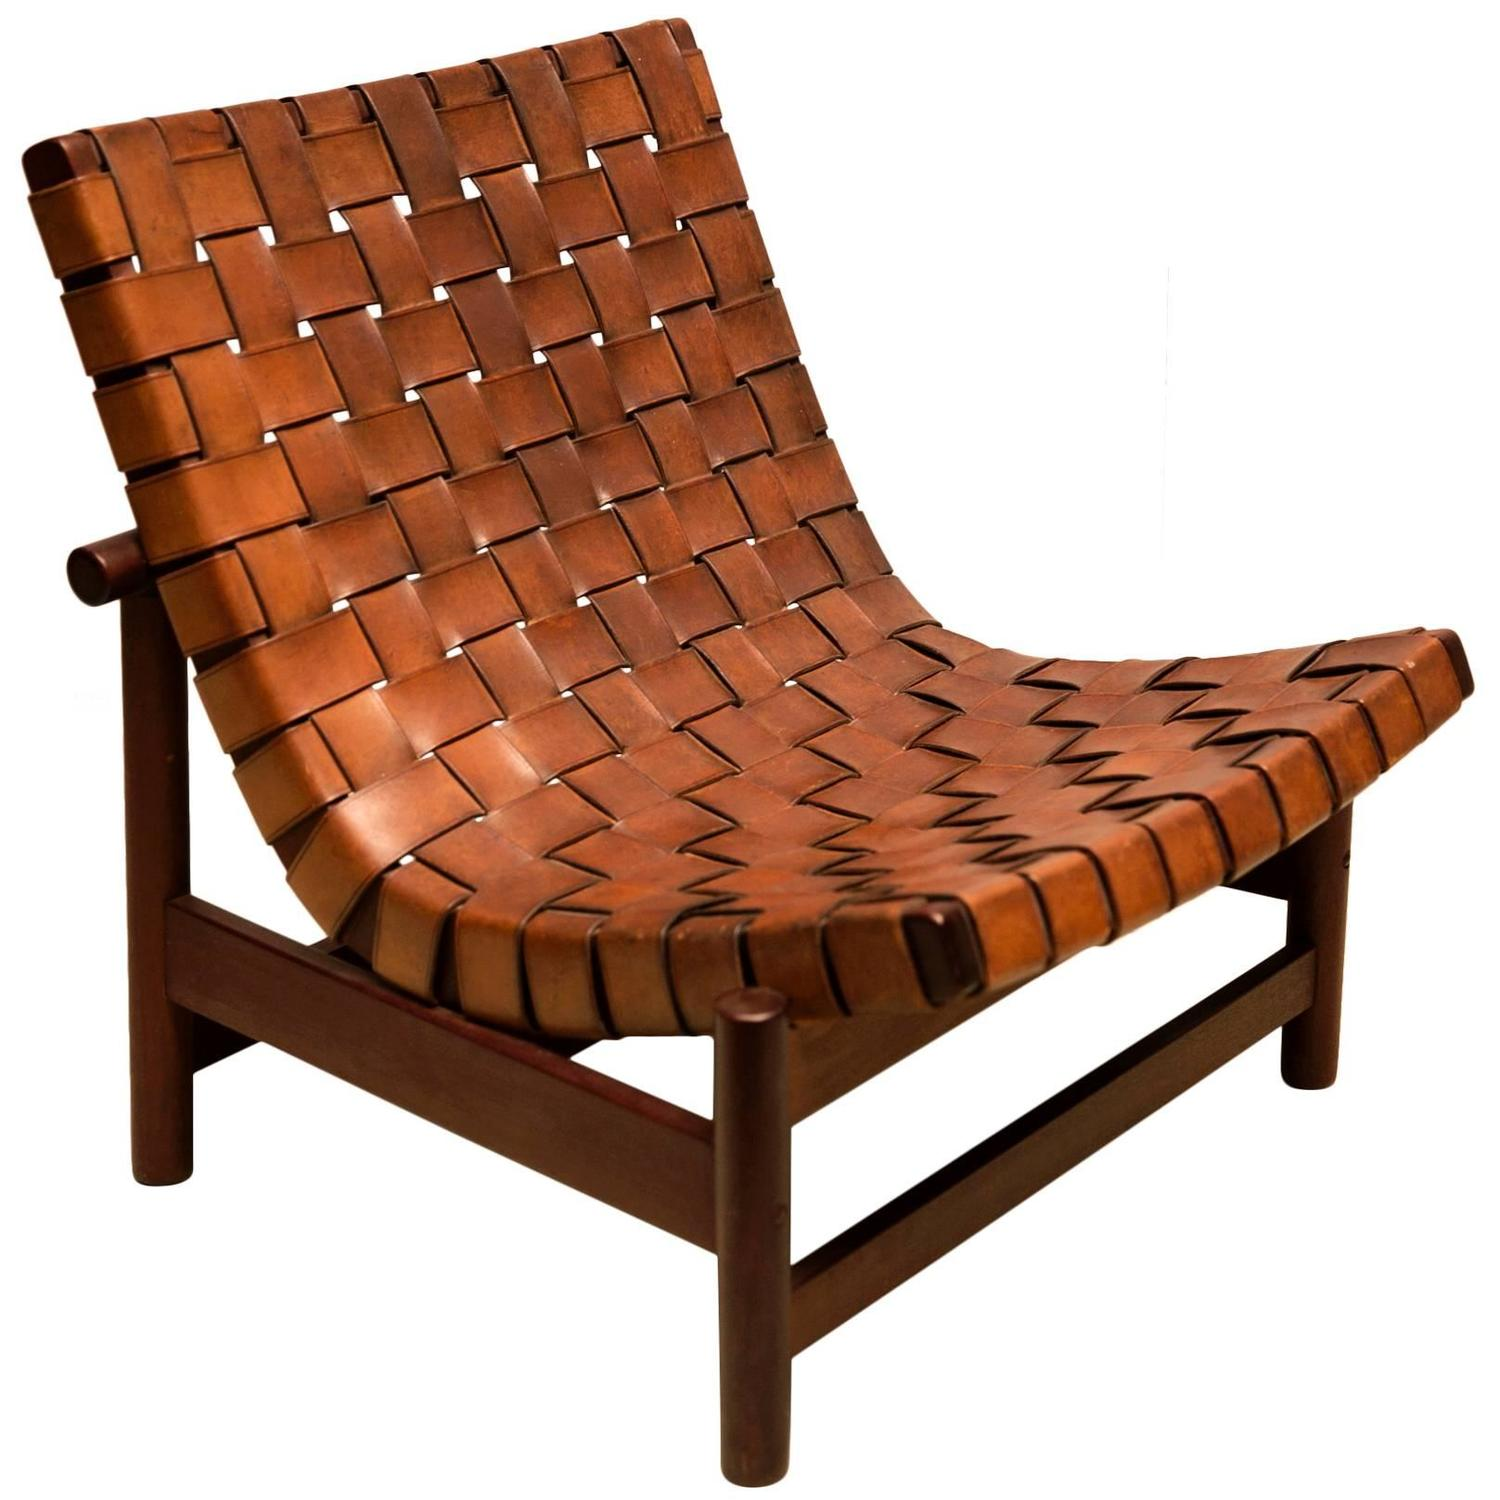 Leather Woven Chair 1950s Lounge Chair In Woven Saddle Leather And Cuban